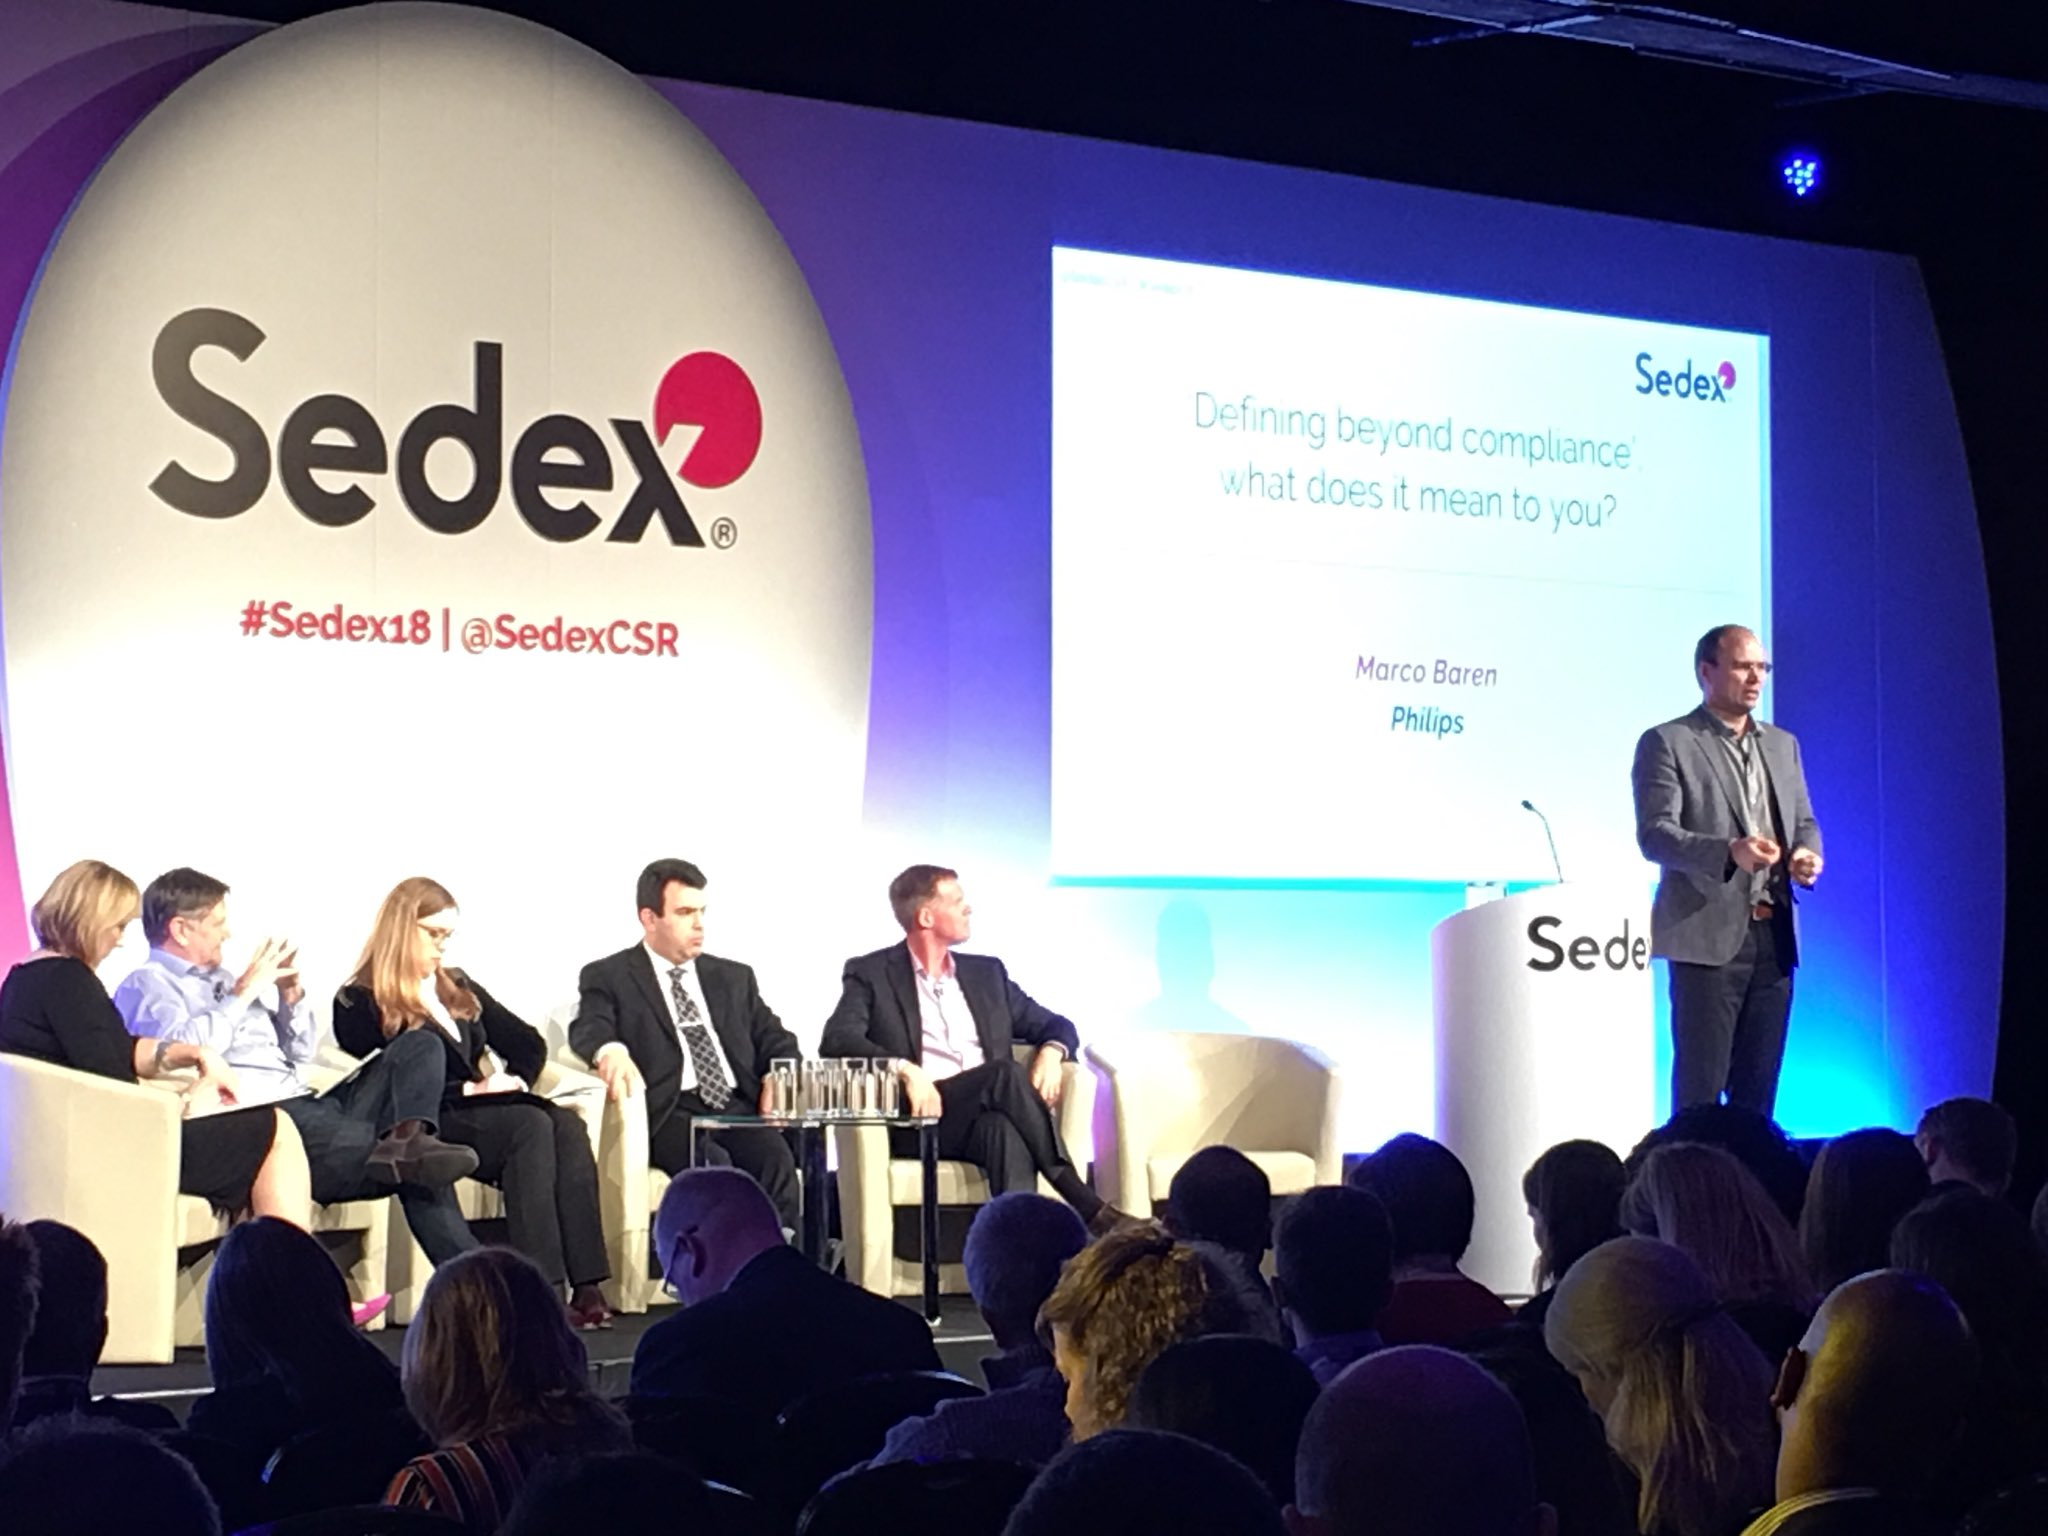 Sedex On Twitter If There Is No Foundation Everything Crumbles How Can We Make Better Use Of All The Data Marco Baren Philips Sedex Sedexcsr